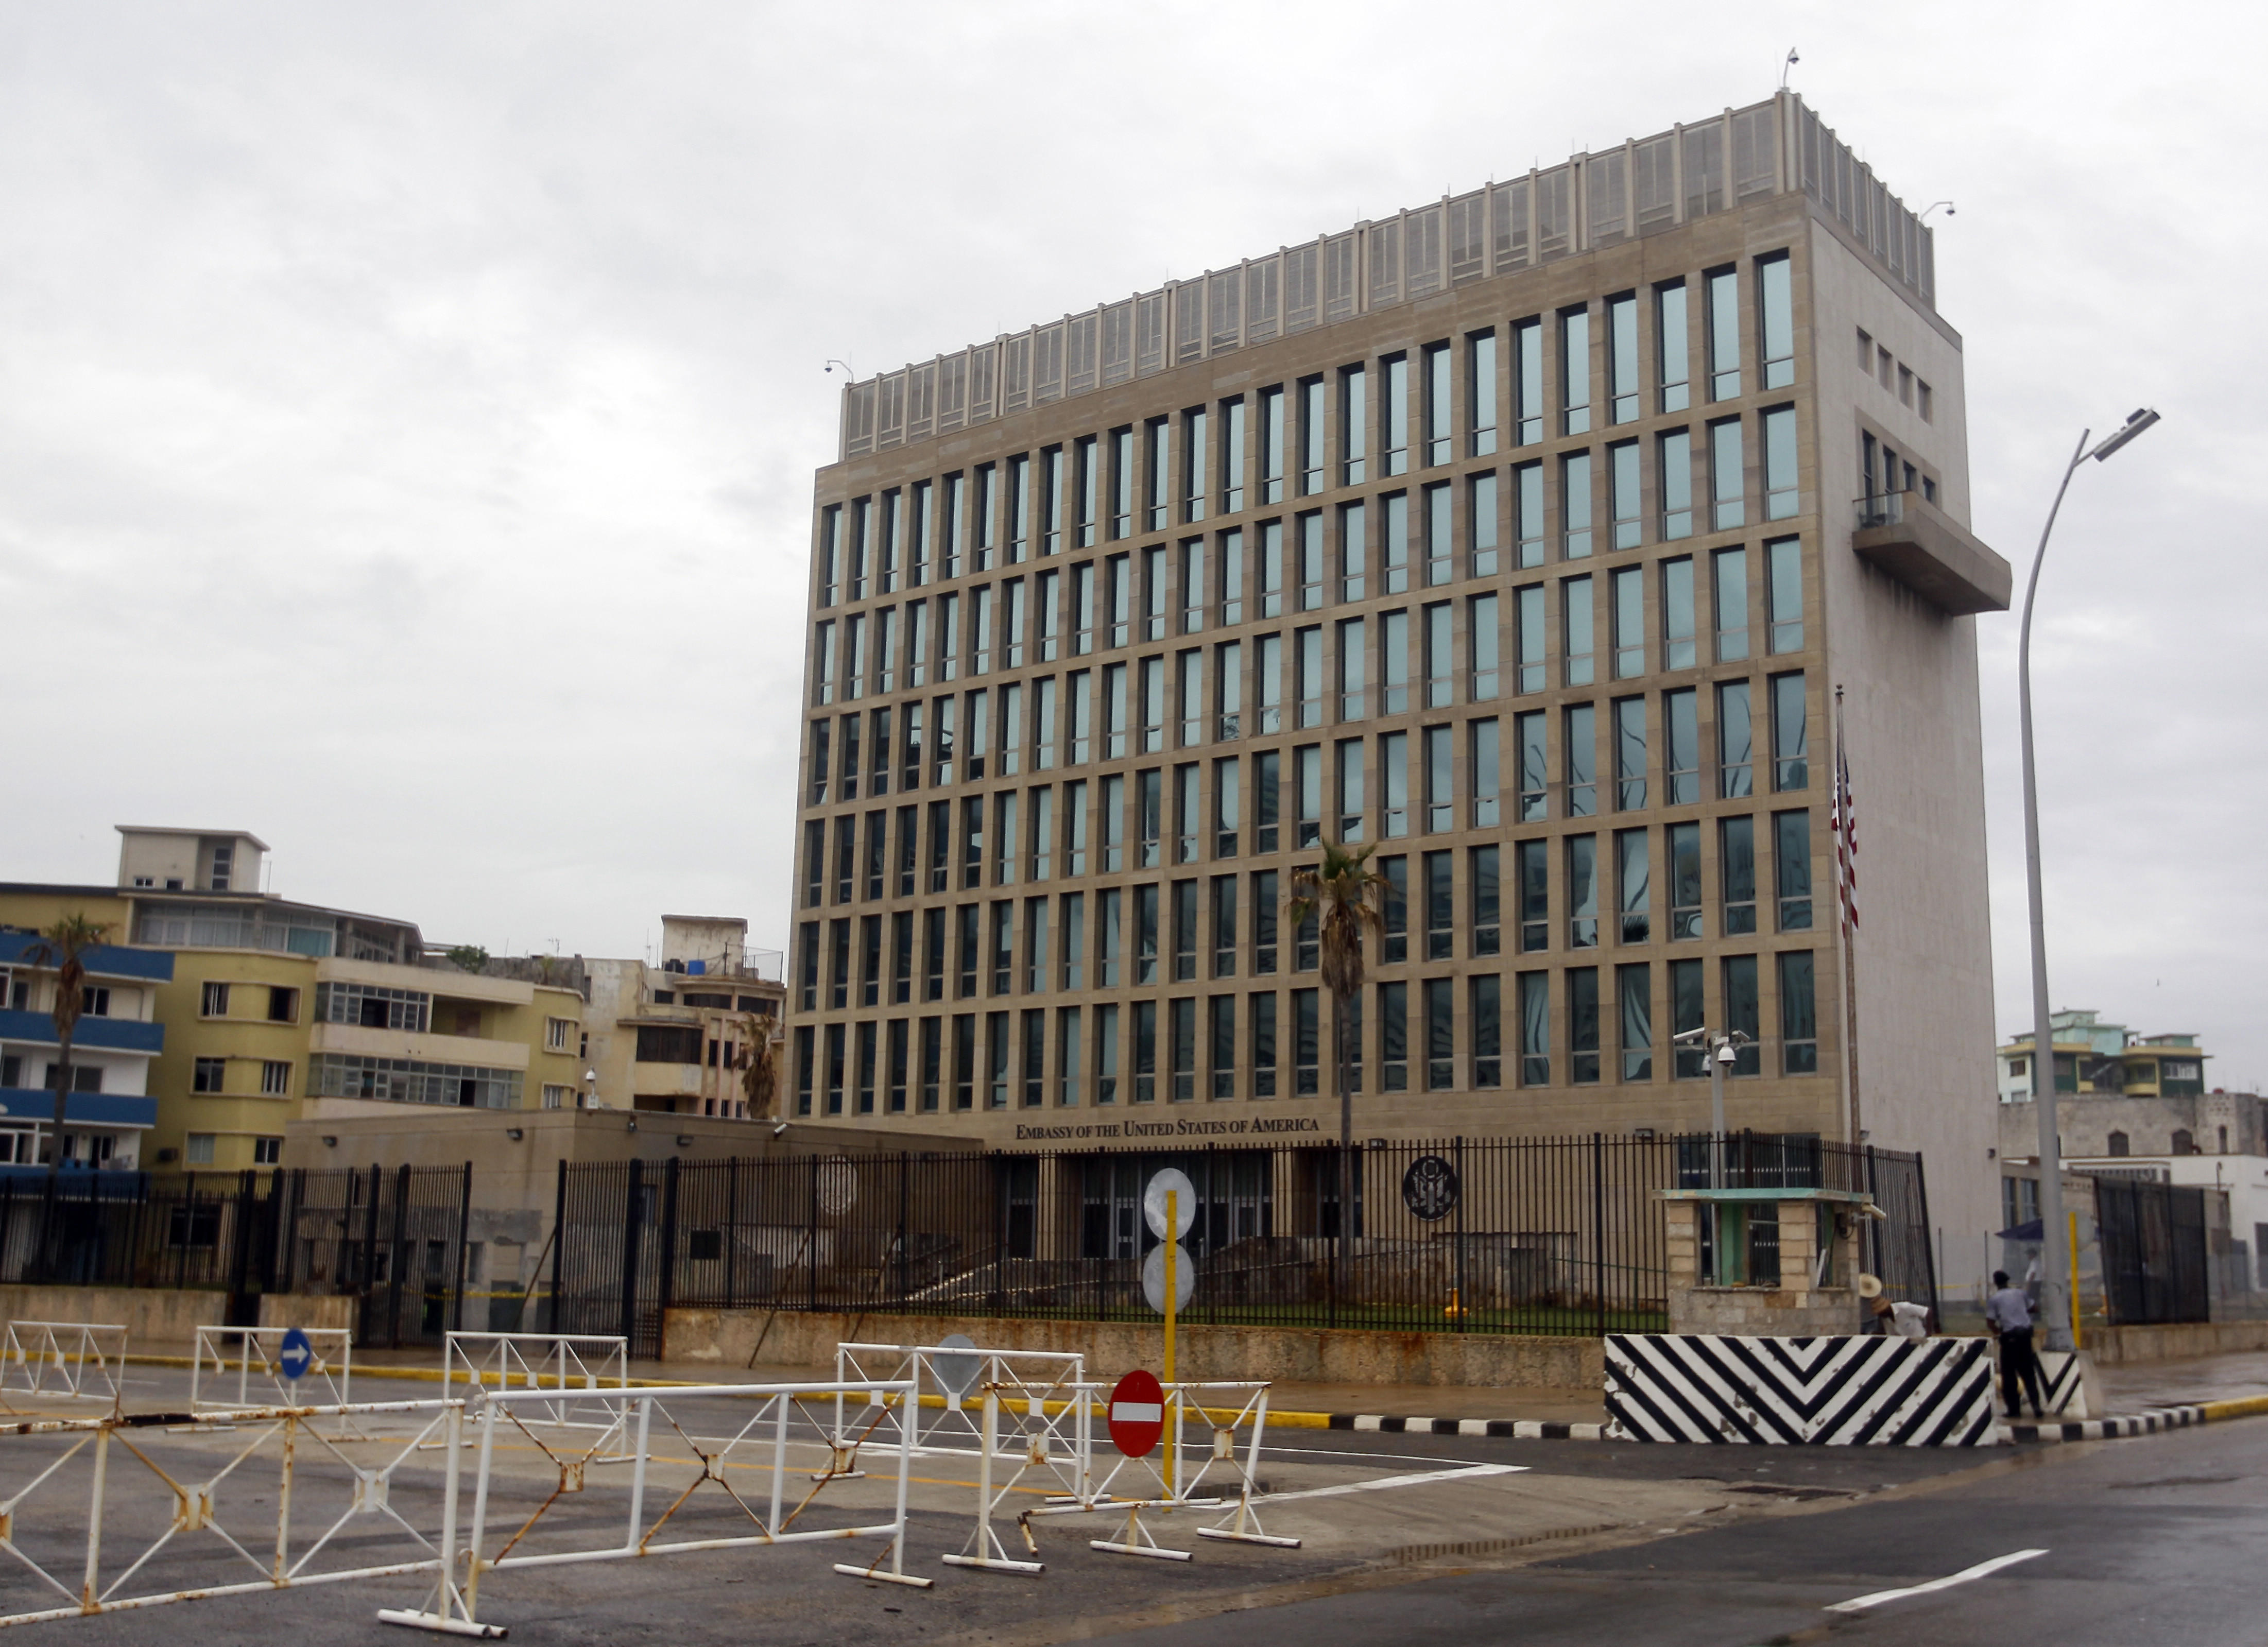 Alledged Sonic Attack At US Embassy In Cuba